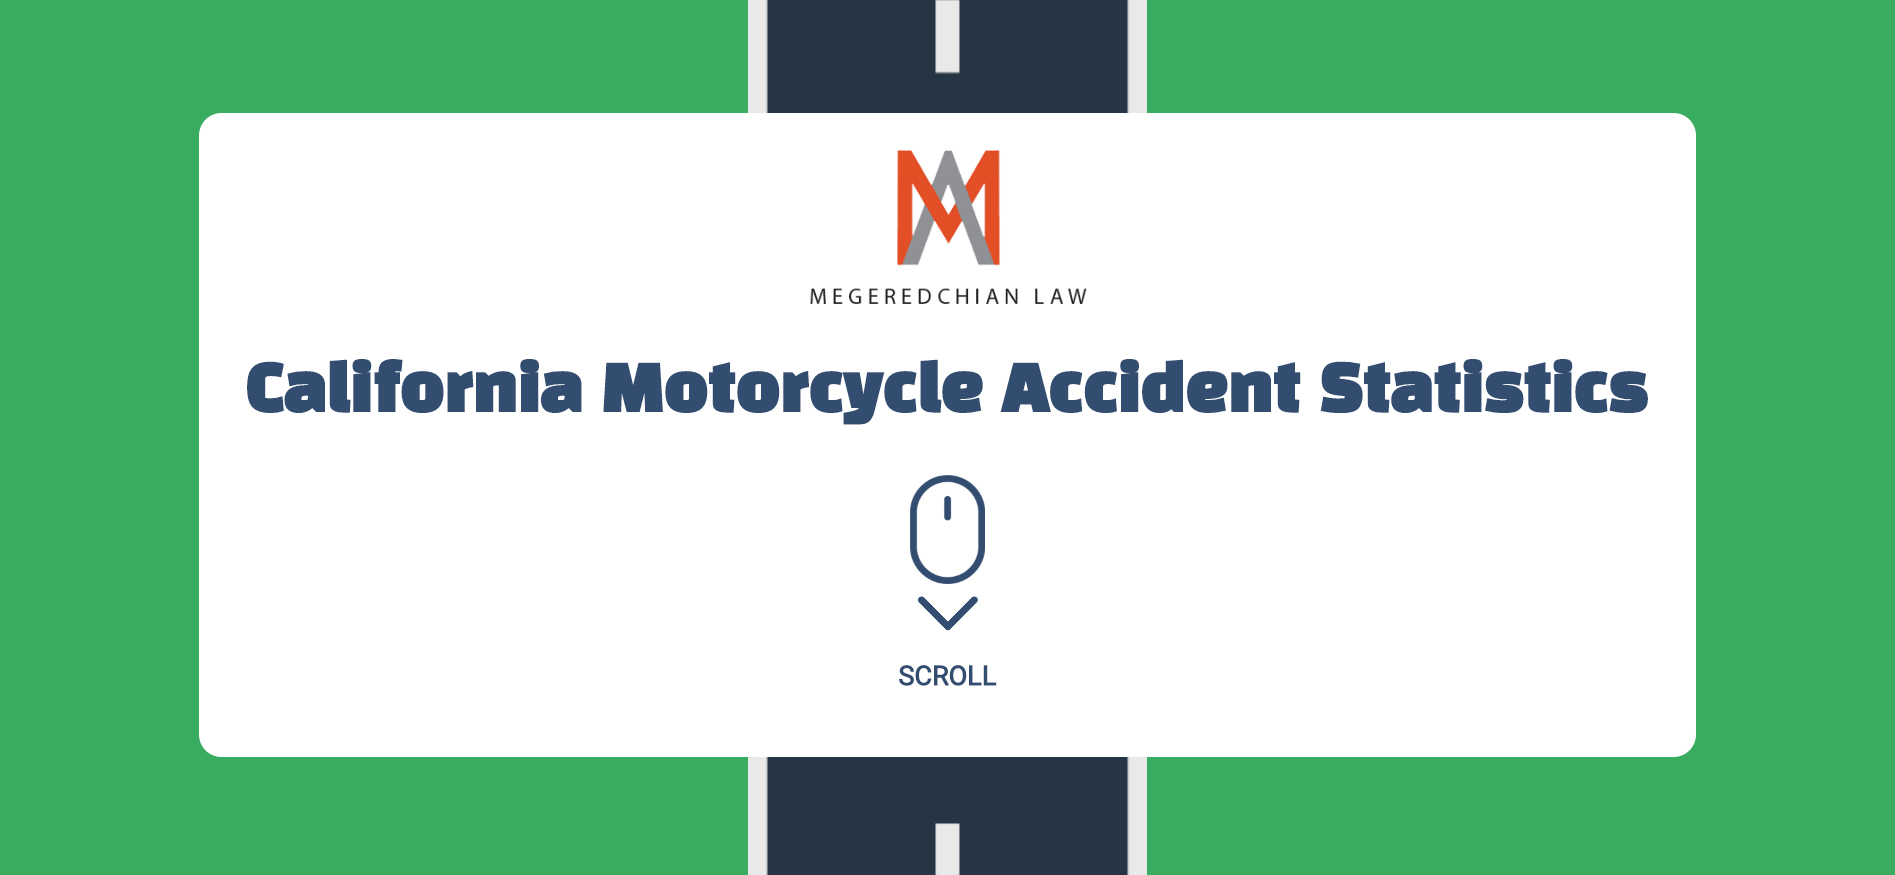 2018 California Motorcycle Accident Statistics Interactive Infographic